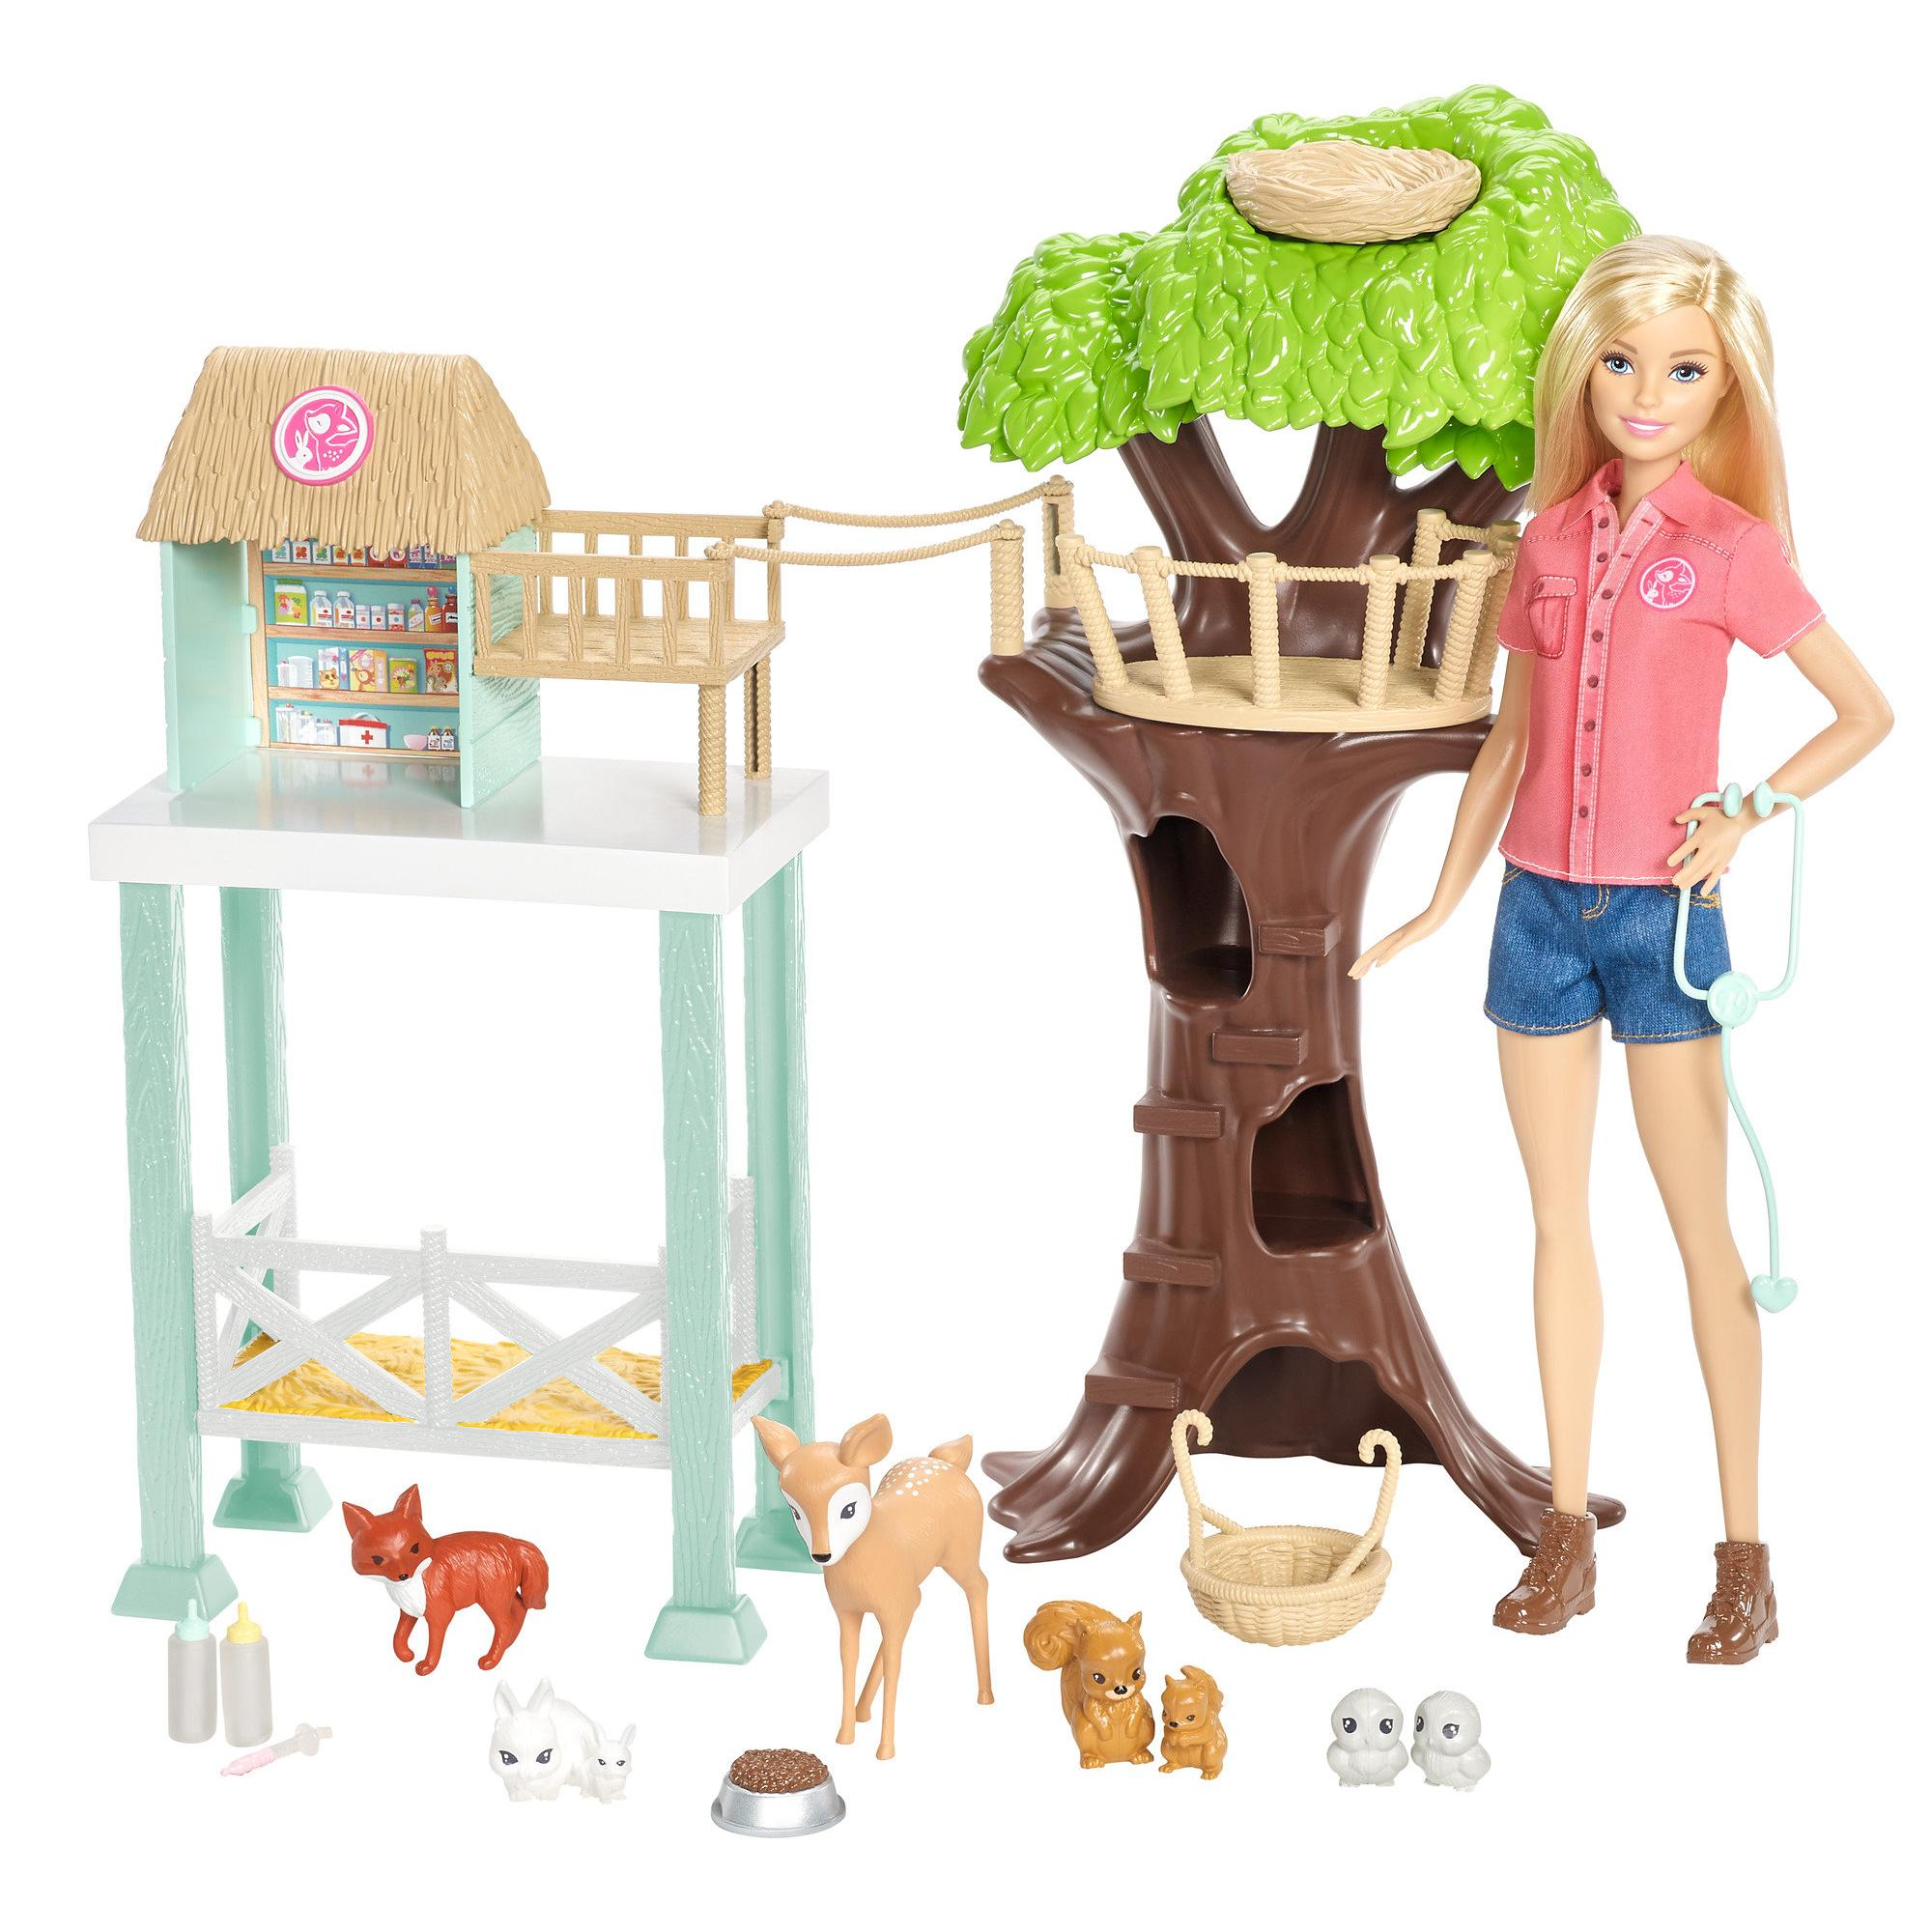 Barbie Pet Rescue Center Playset with Doll, 8 Animals & Accessories on animal safari wildlife, fisher-price farm animal set, farm animal safari set, animal planet wildlife tree house bridge, animal planet wildlife family, lego wildlife set, ocean sea animal set, animal planet wildlife game, jurassic park toy set, animal toys,